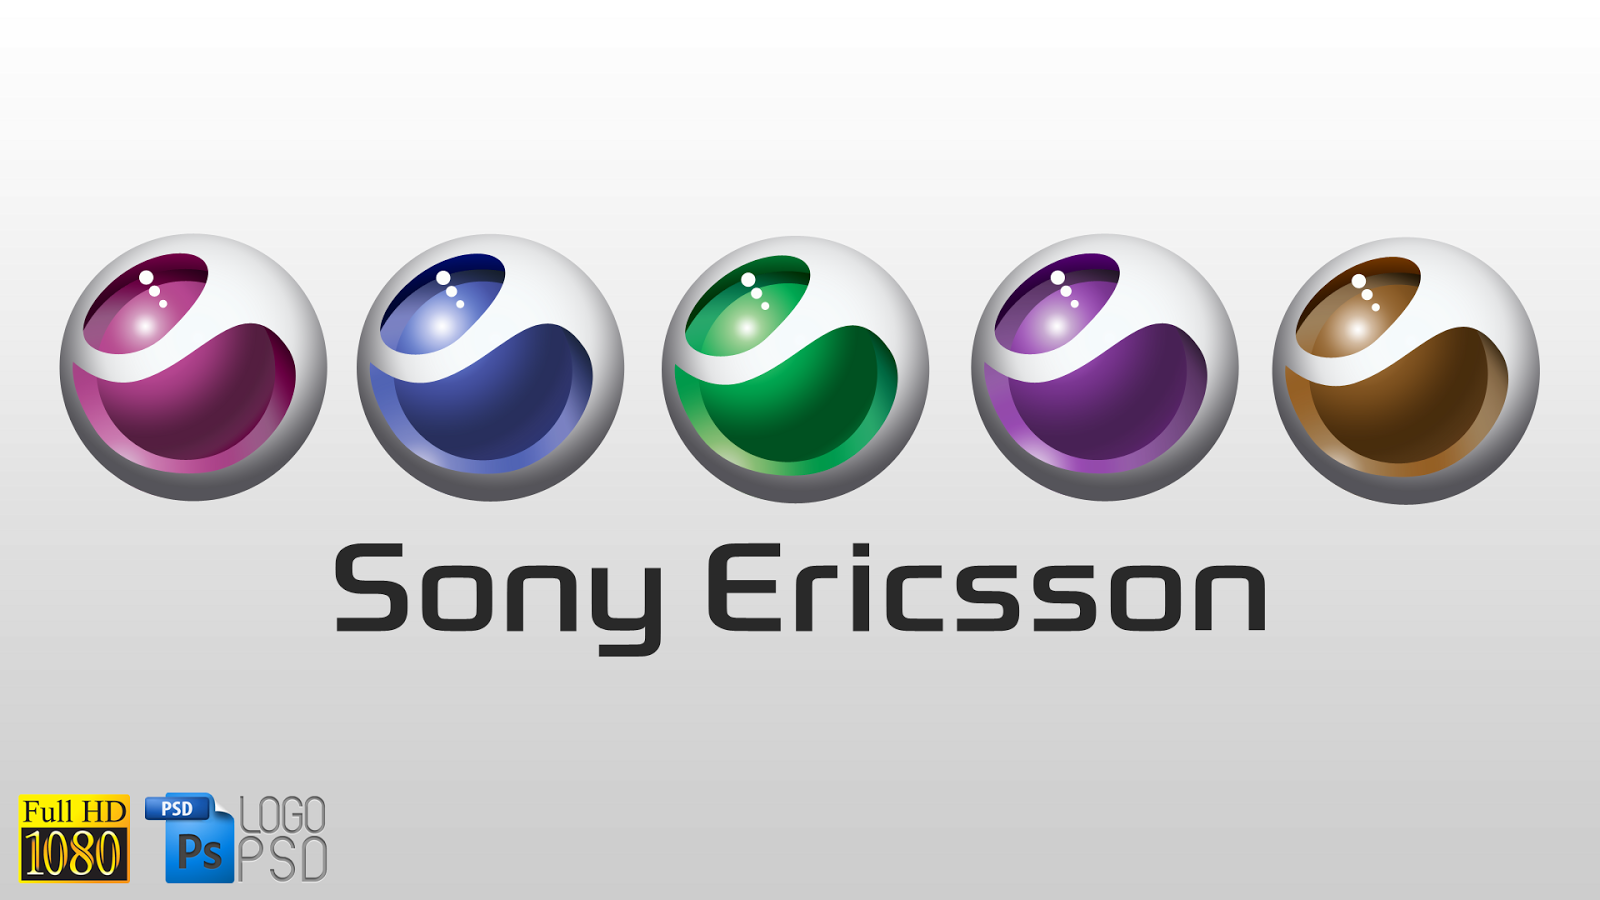 All About Logo: Sony Ericsson Logo